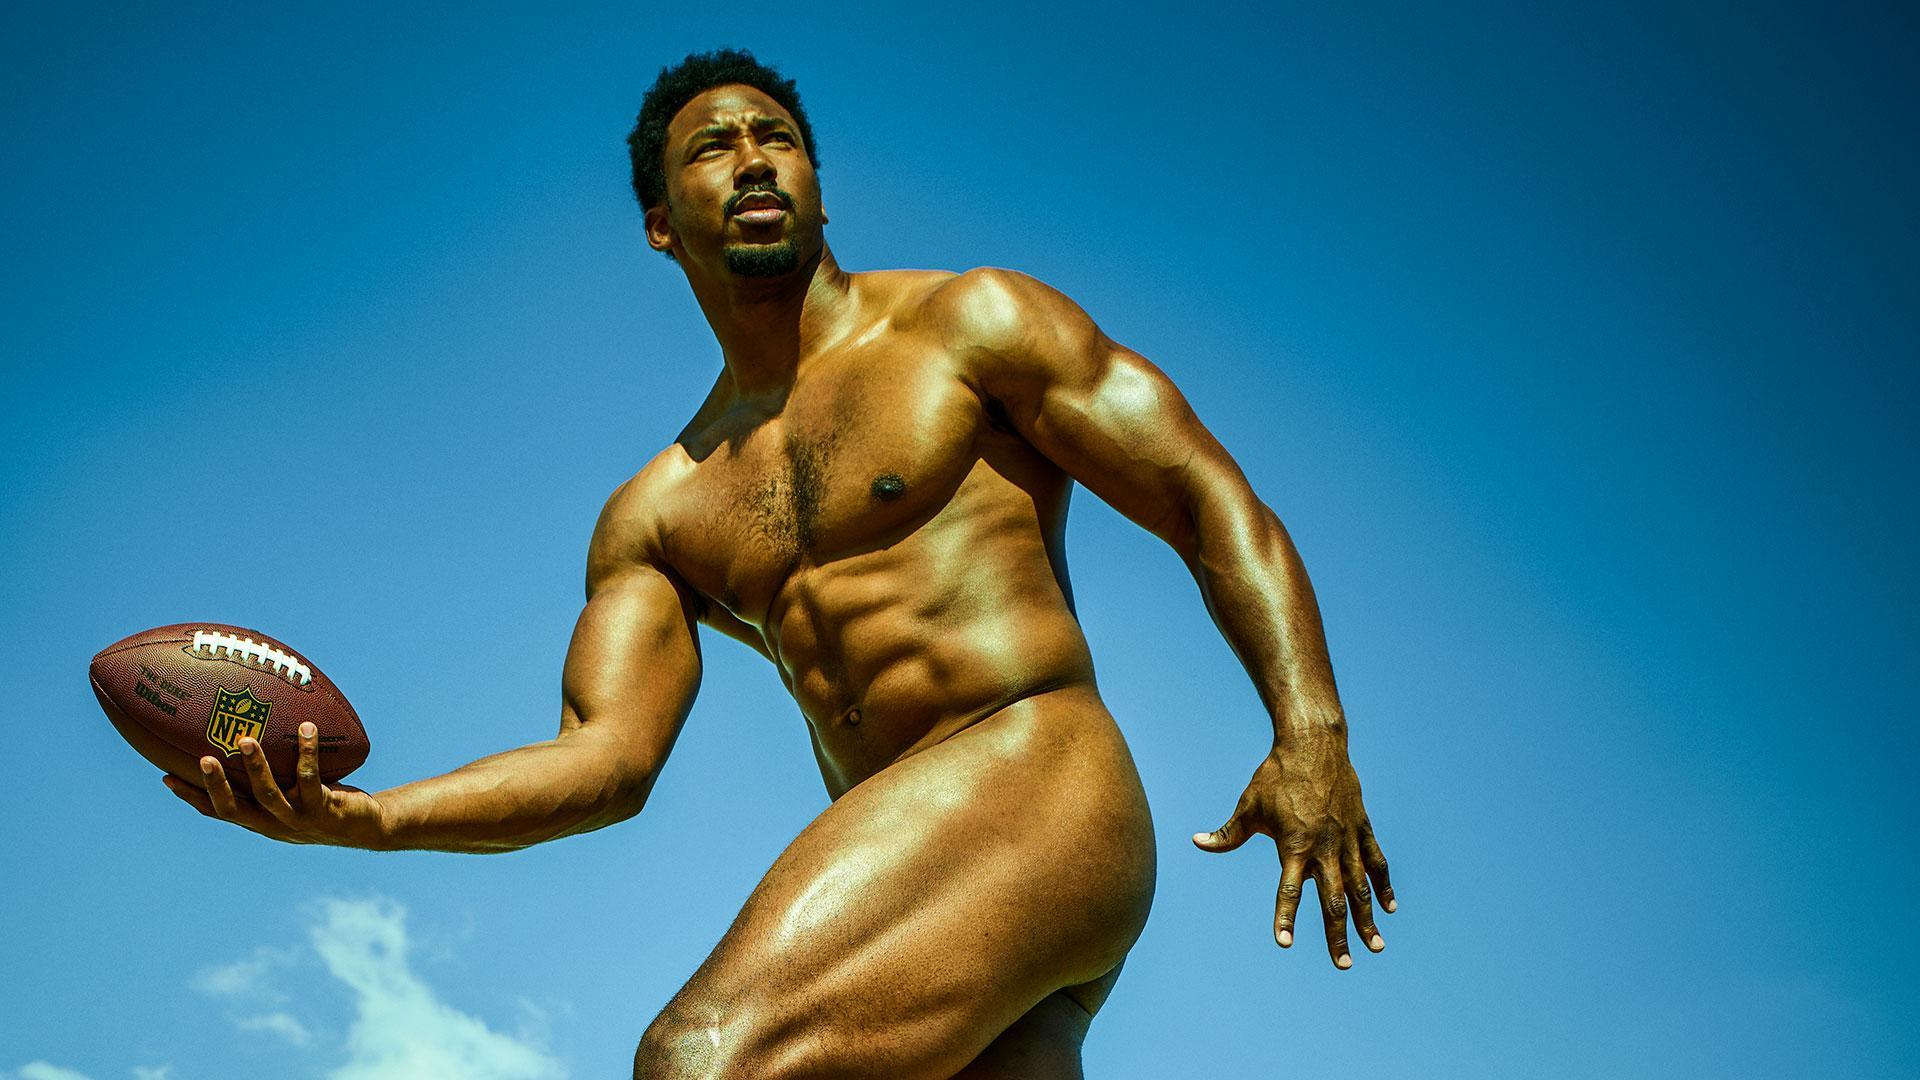 Behind the scenes of Myles Garrett's Body Issue shoot